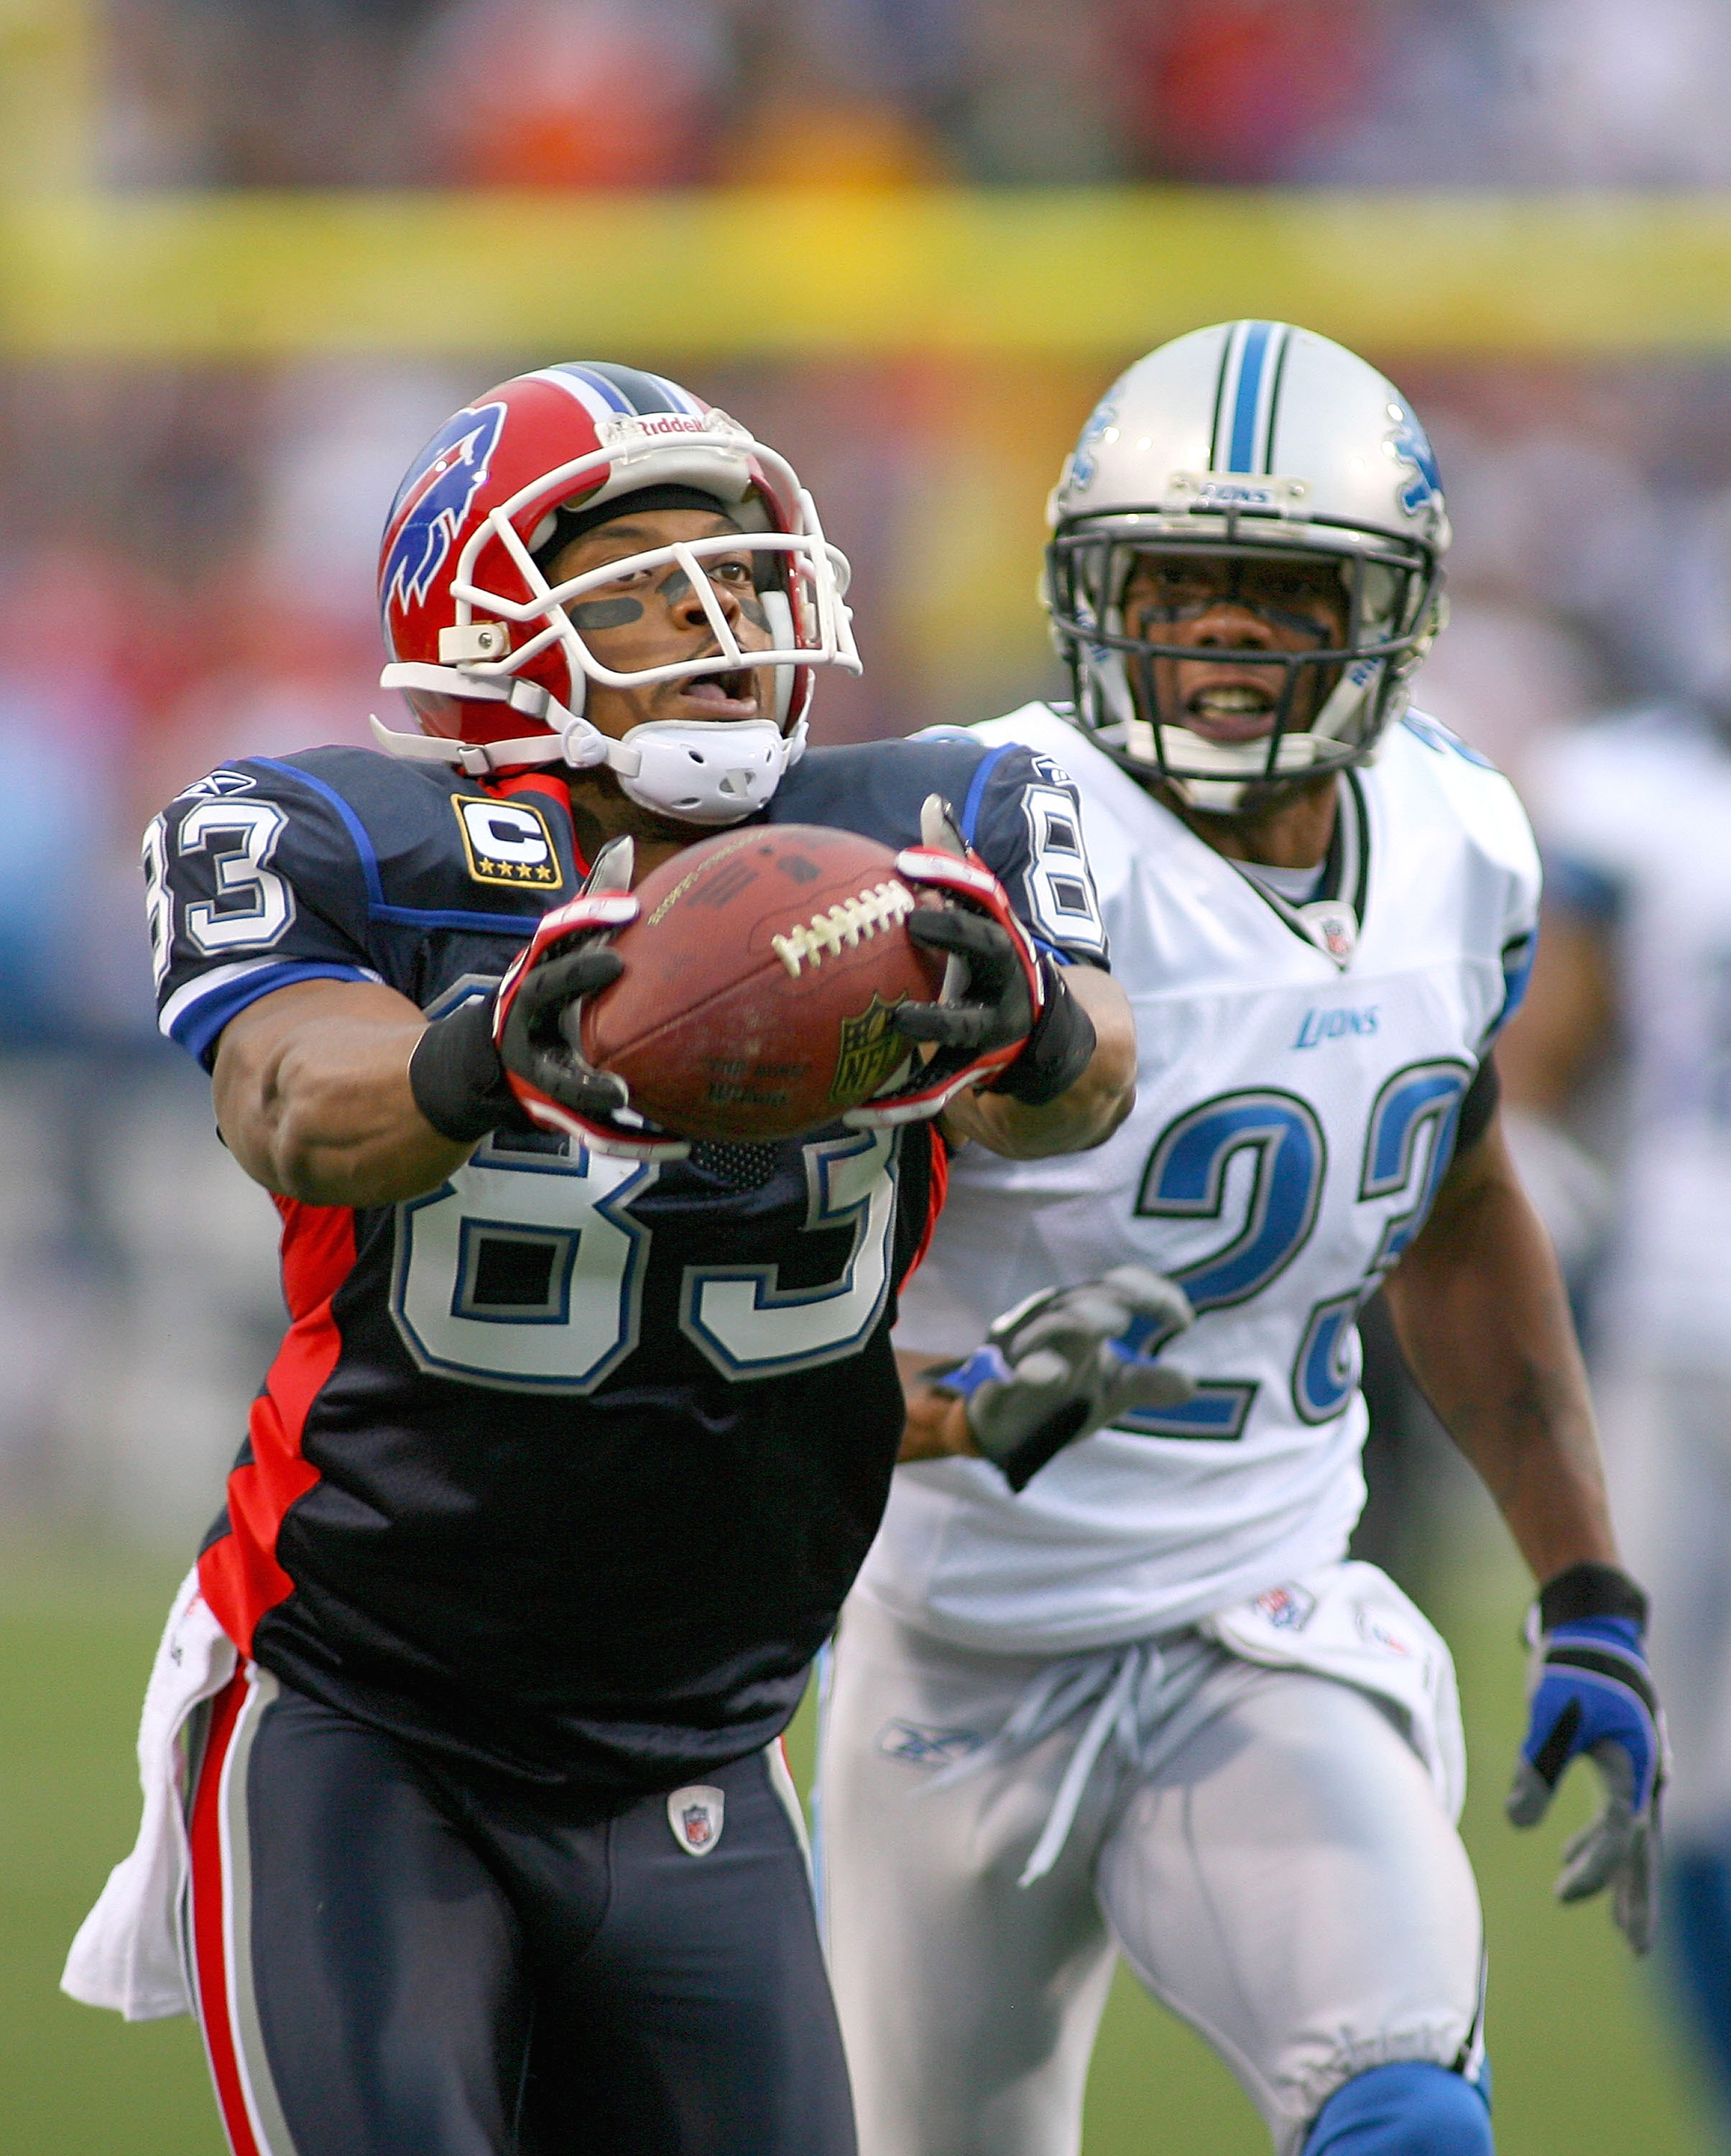 ORCHARD PARK, NY - NOVEMBER 14: Lee Evans #83  of the Buffalo Bills makes a finger tip catch against Chris Houston #23 of the Detroit Lions at Ralph Wilson Stadium on November 14, 2010 in Orchard Park, New York.  (Photo by Rick Stewart/Getty Images)